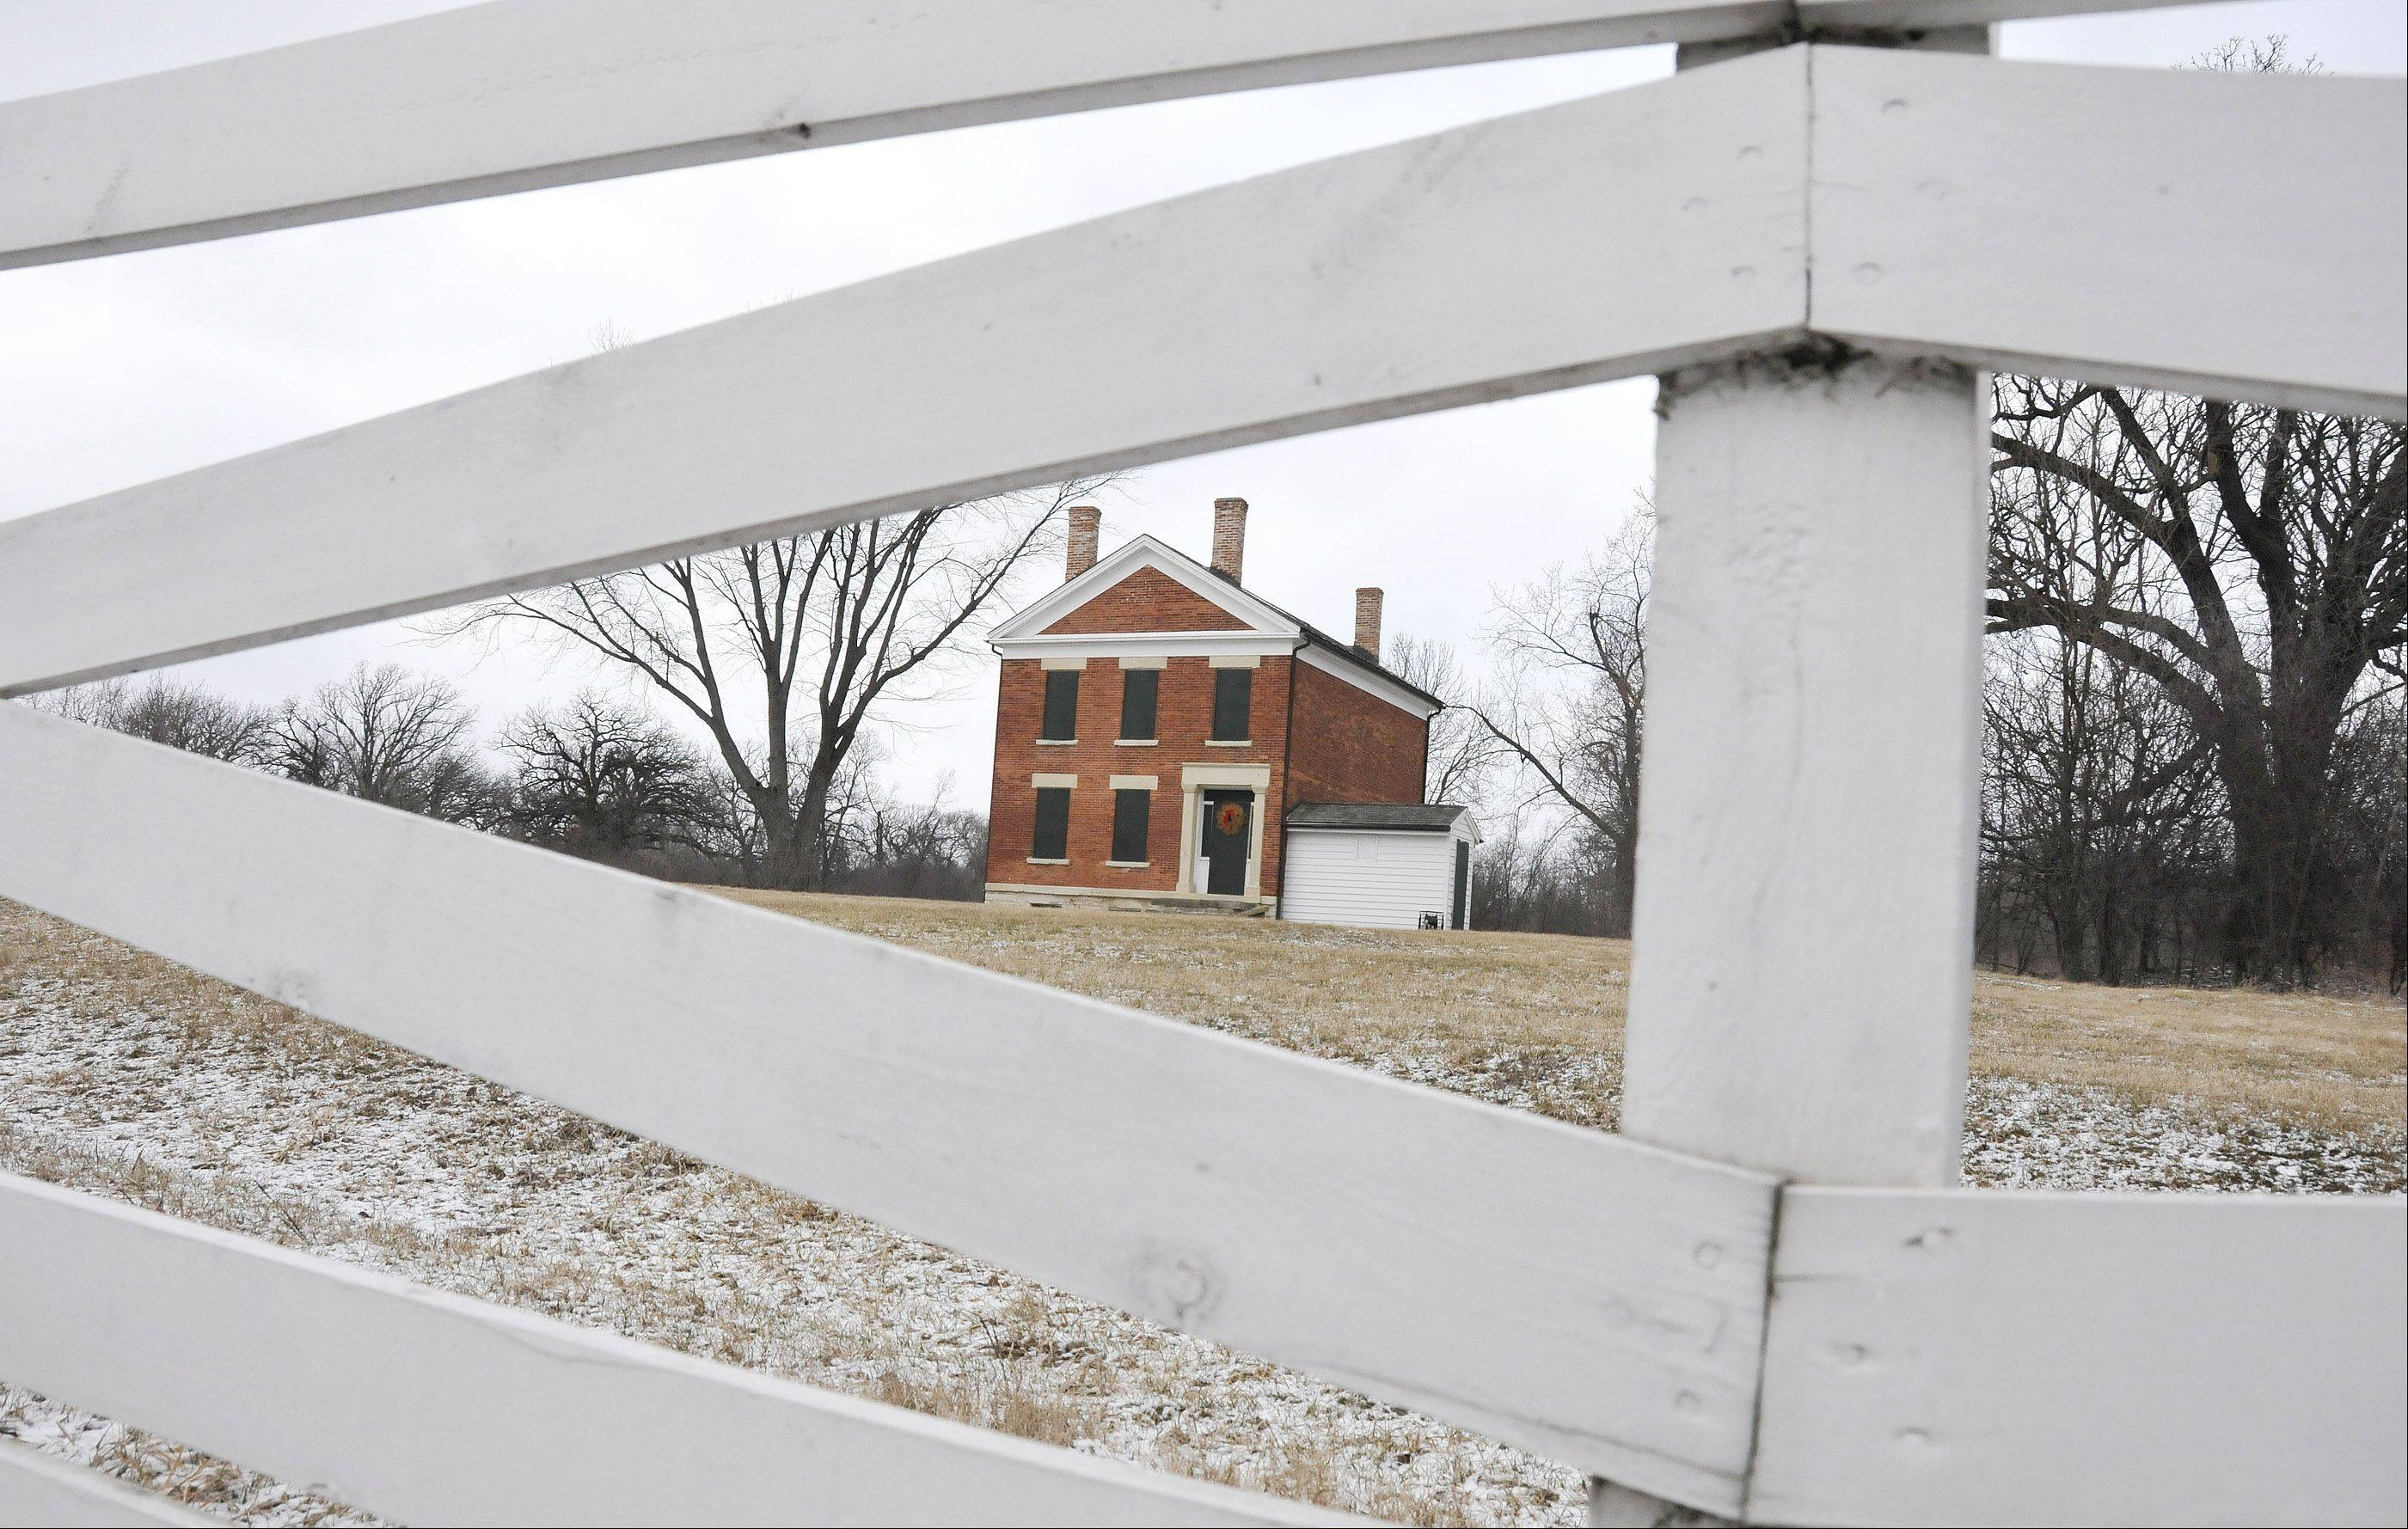 The DuPage County Forest Preserve District plans to compile a list of historic structures on district land, including the Baker House near West Chicago.